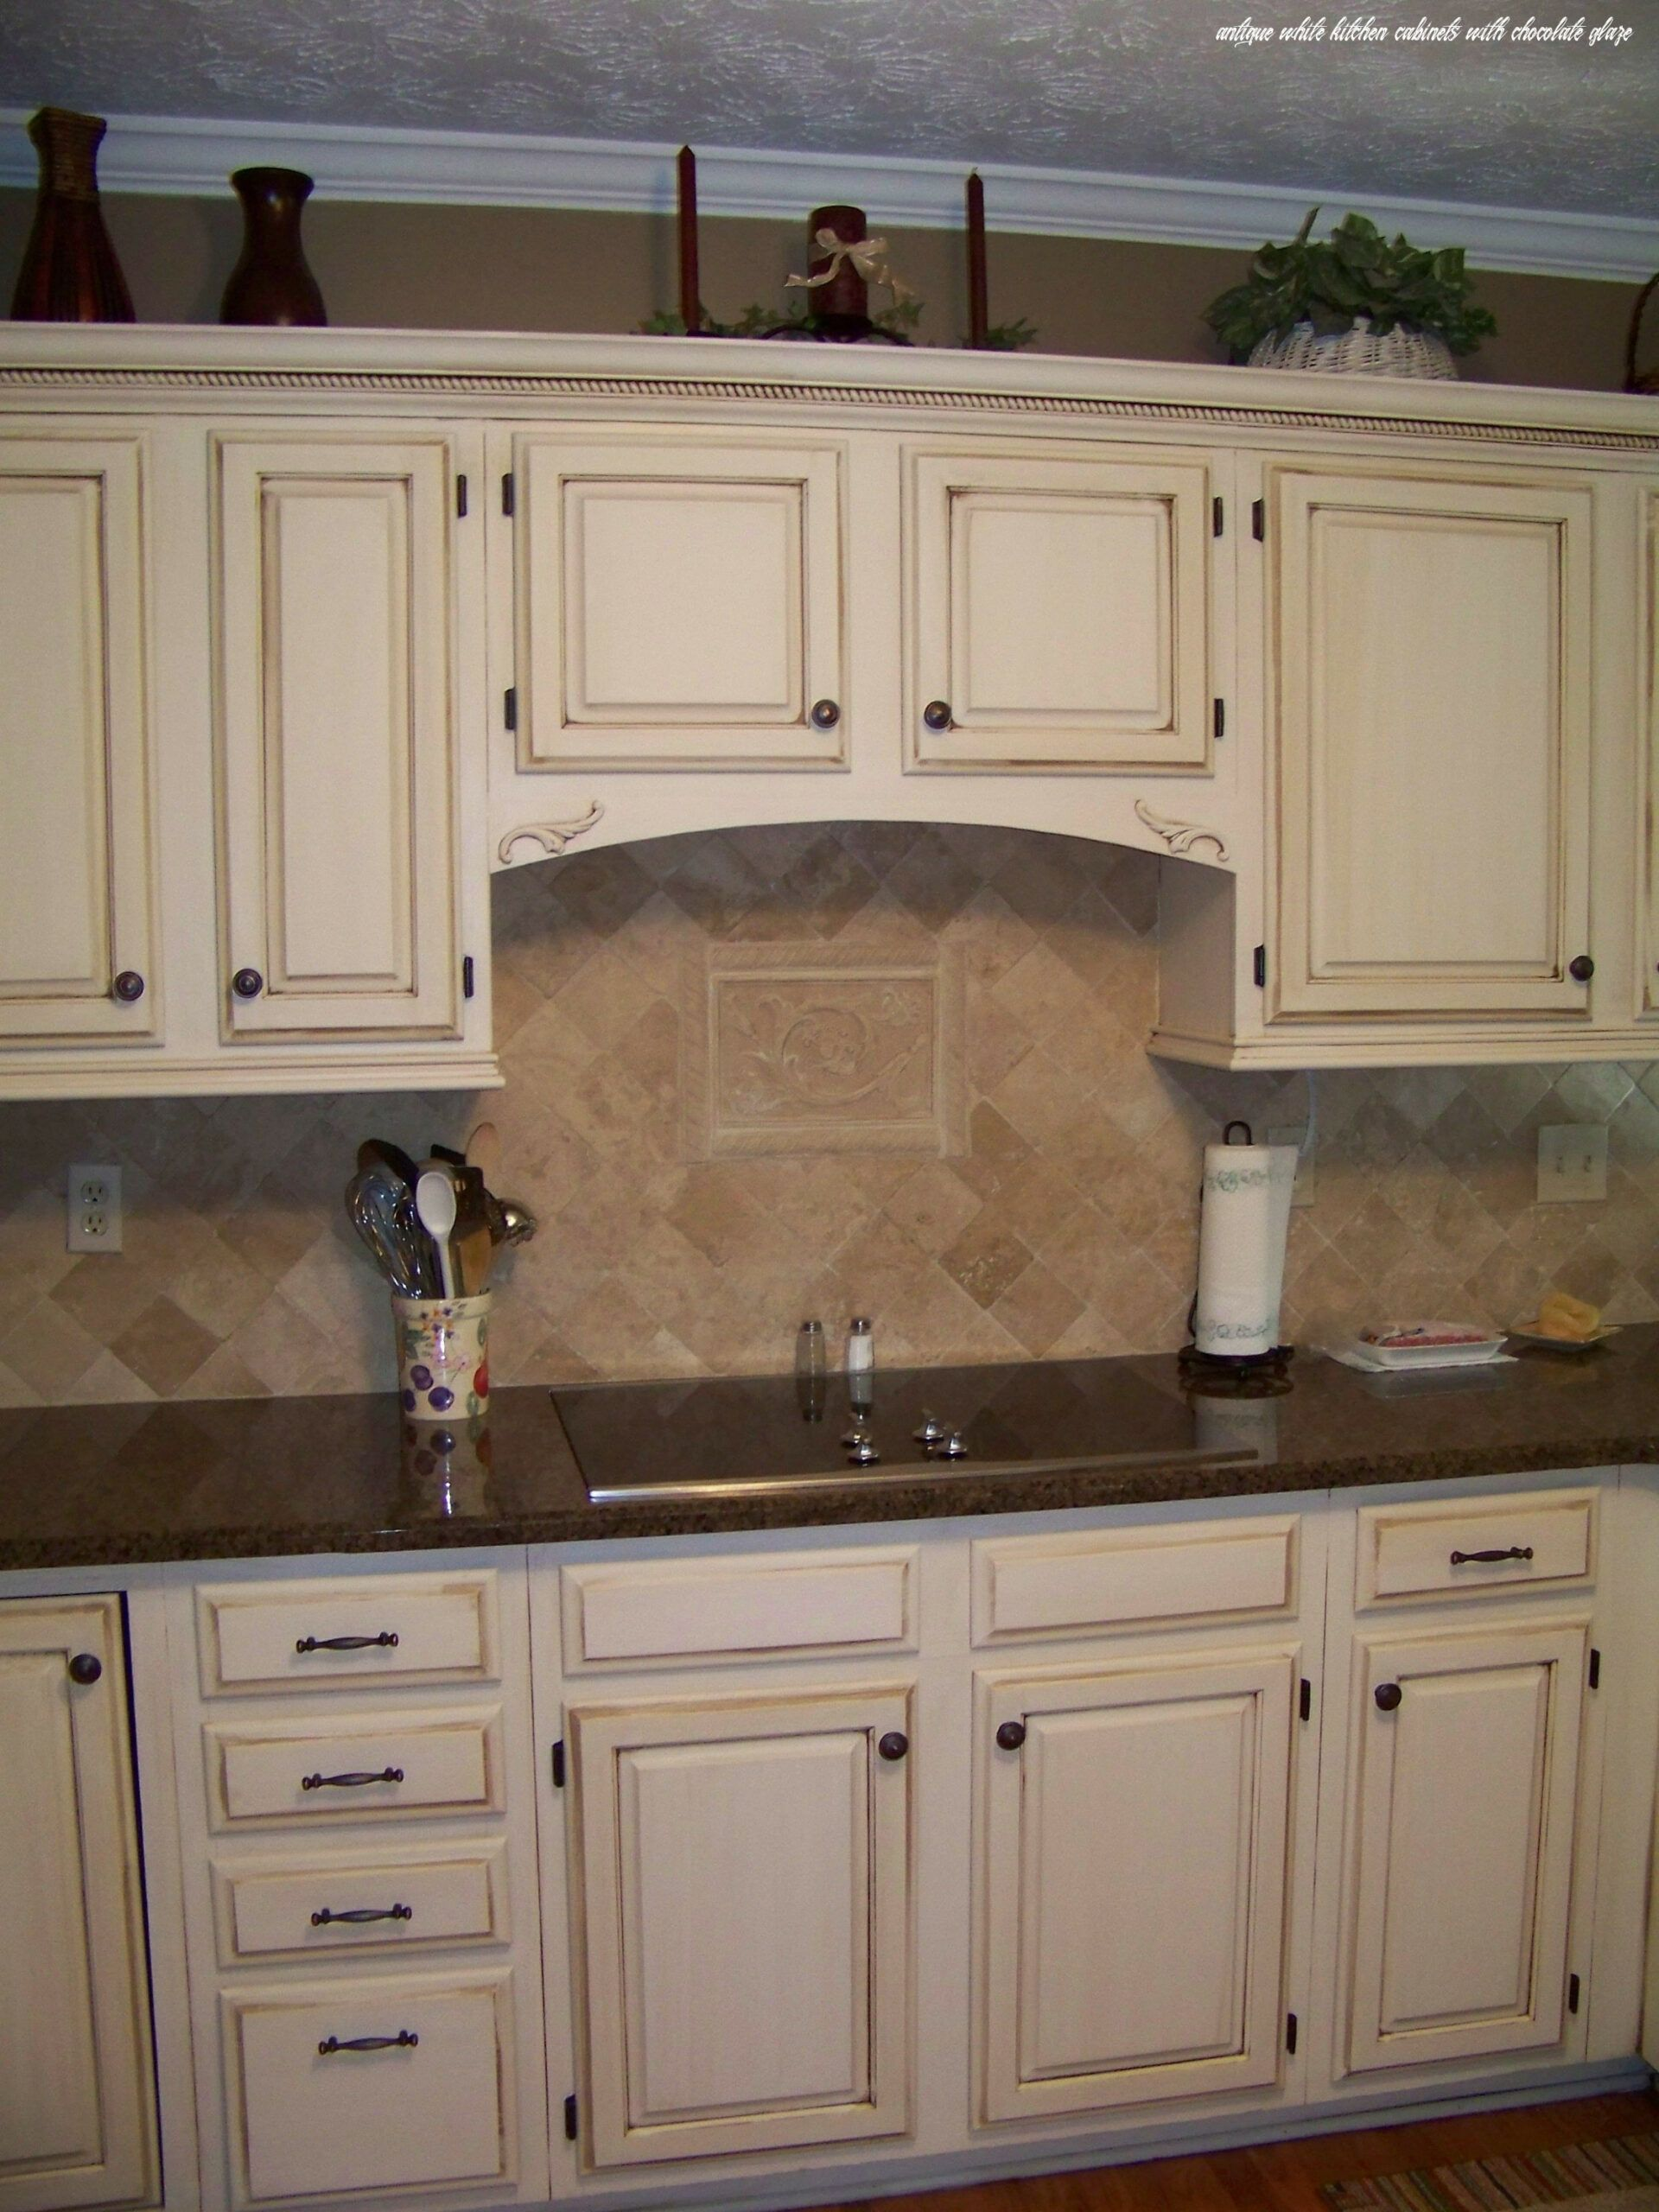 What Will Antique White Kitchen Cabinets With Chocolate Glaze Be Like In The Next 50 Years In 2020 Antique White Kitchen Kitchen Cabinet Design New Kitchen Cabinets